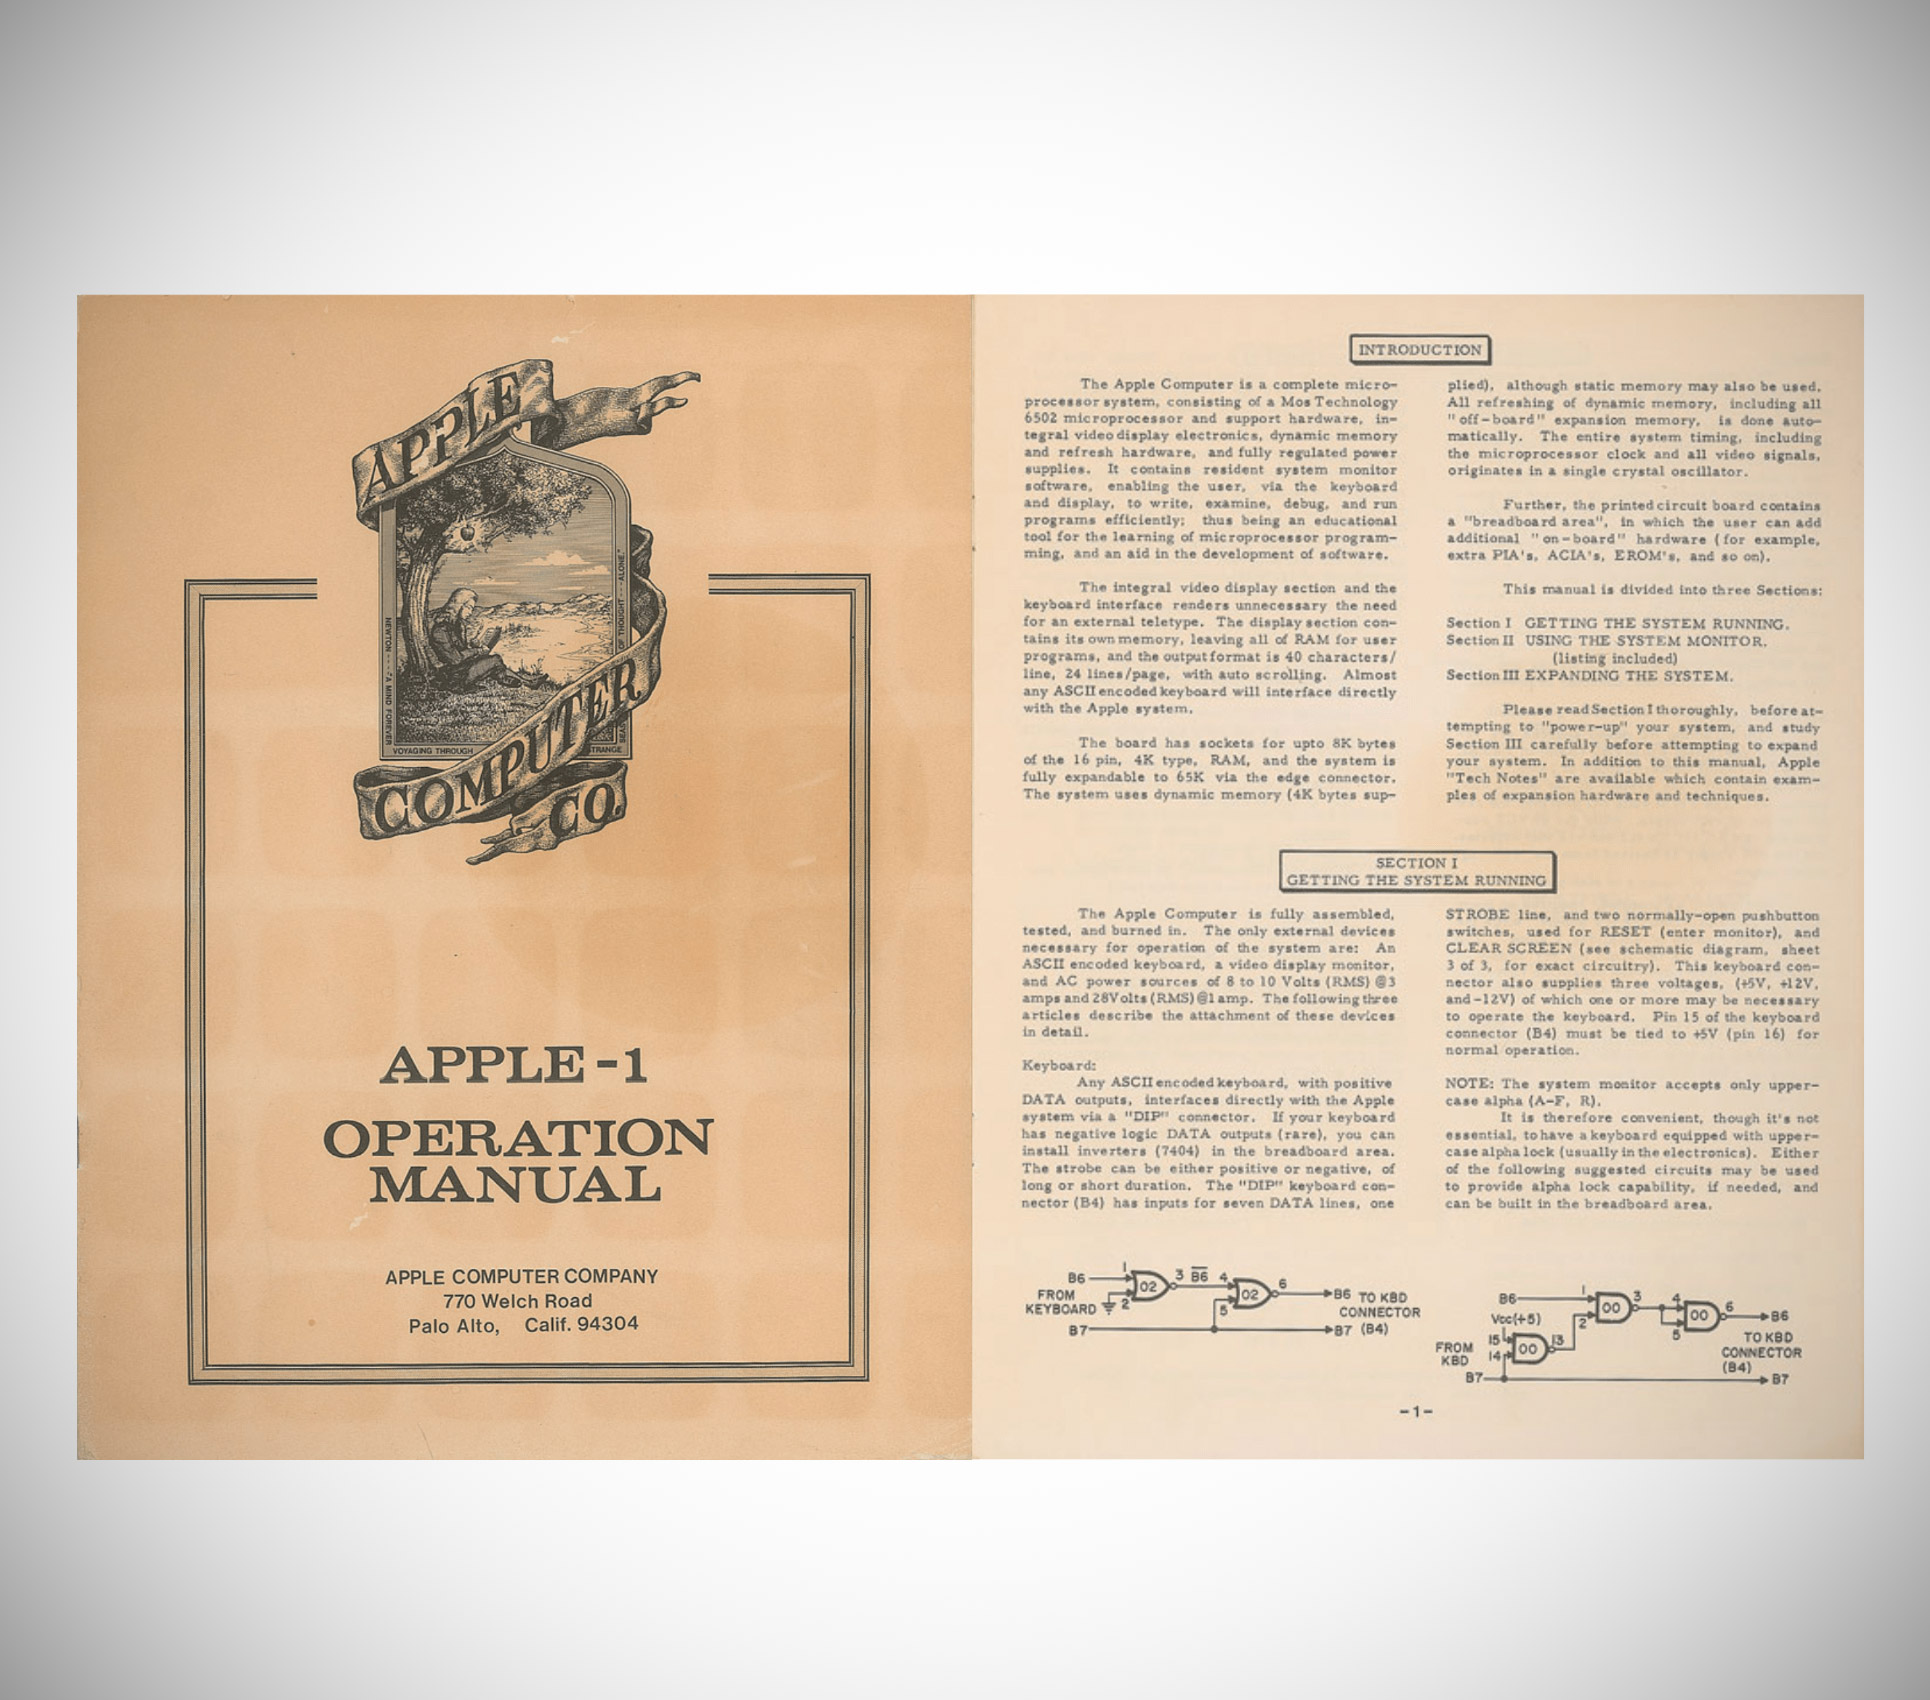 Apple-1 Manual 1976 Auction